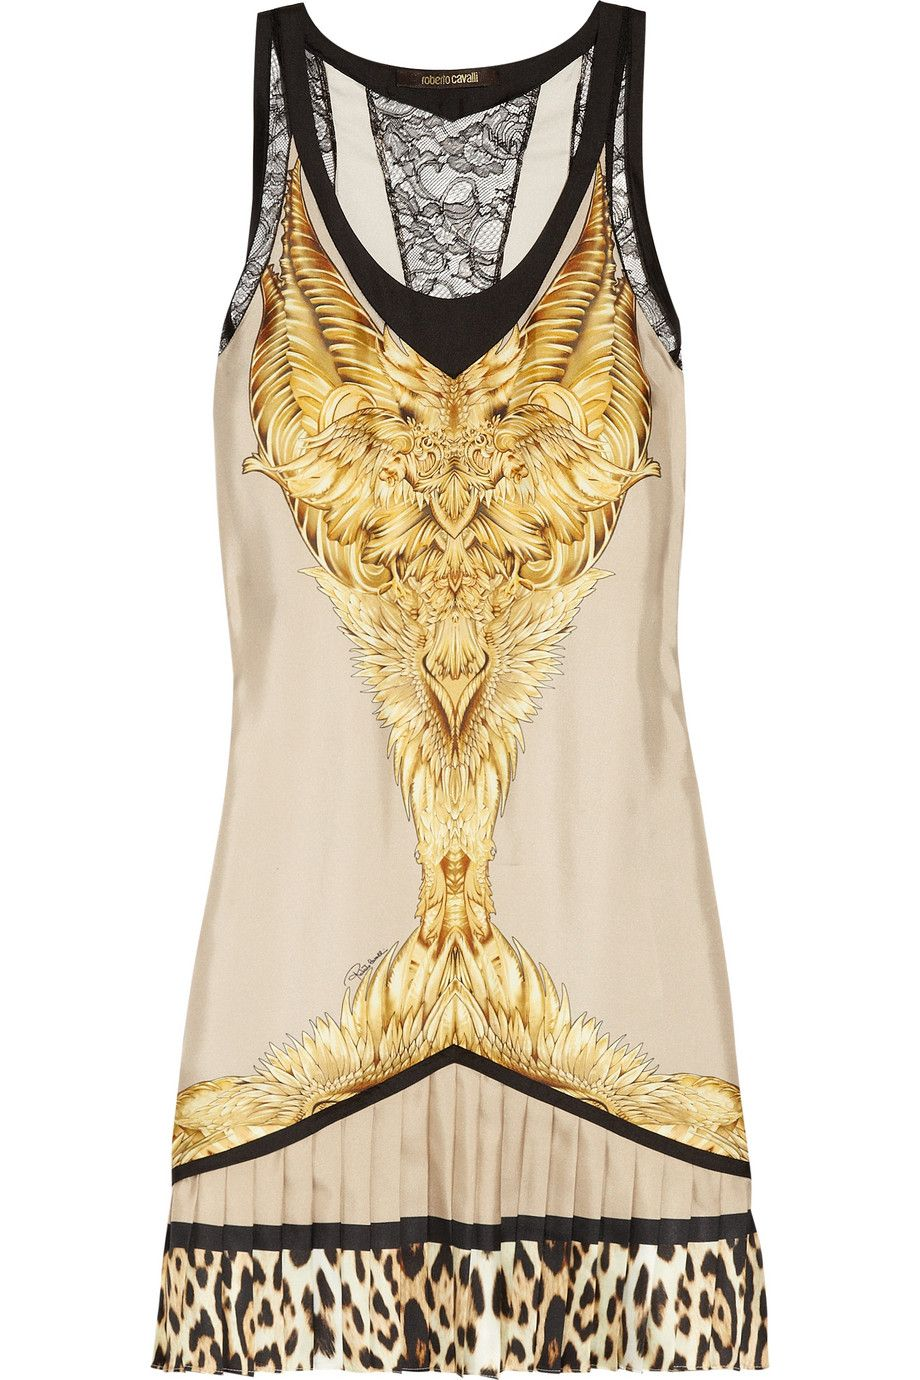 Roberto Cavalli Printed silk-twill mini dress. Roberto Cavalli Printed  silk-twill mini dress Gold Fashion, Fashion Night ... c6f5b2e891